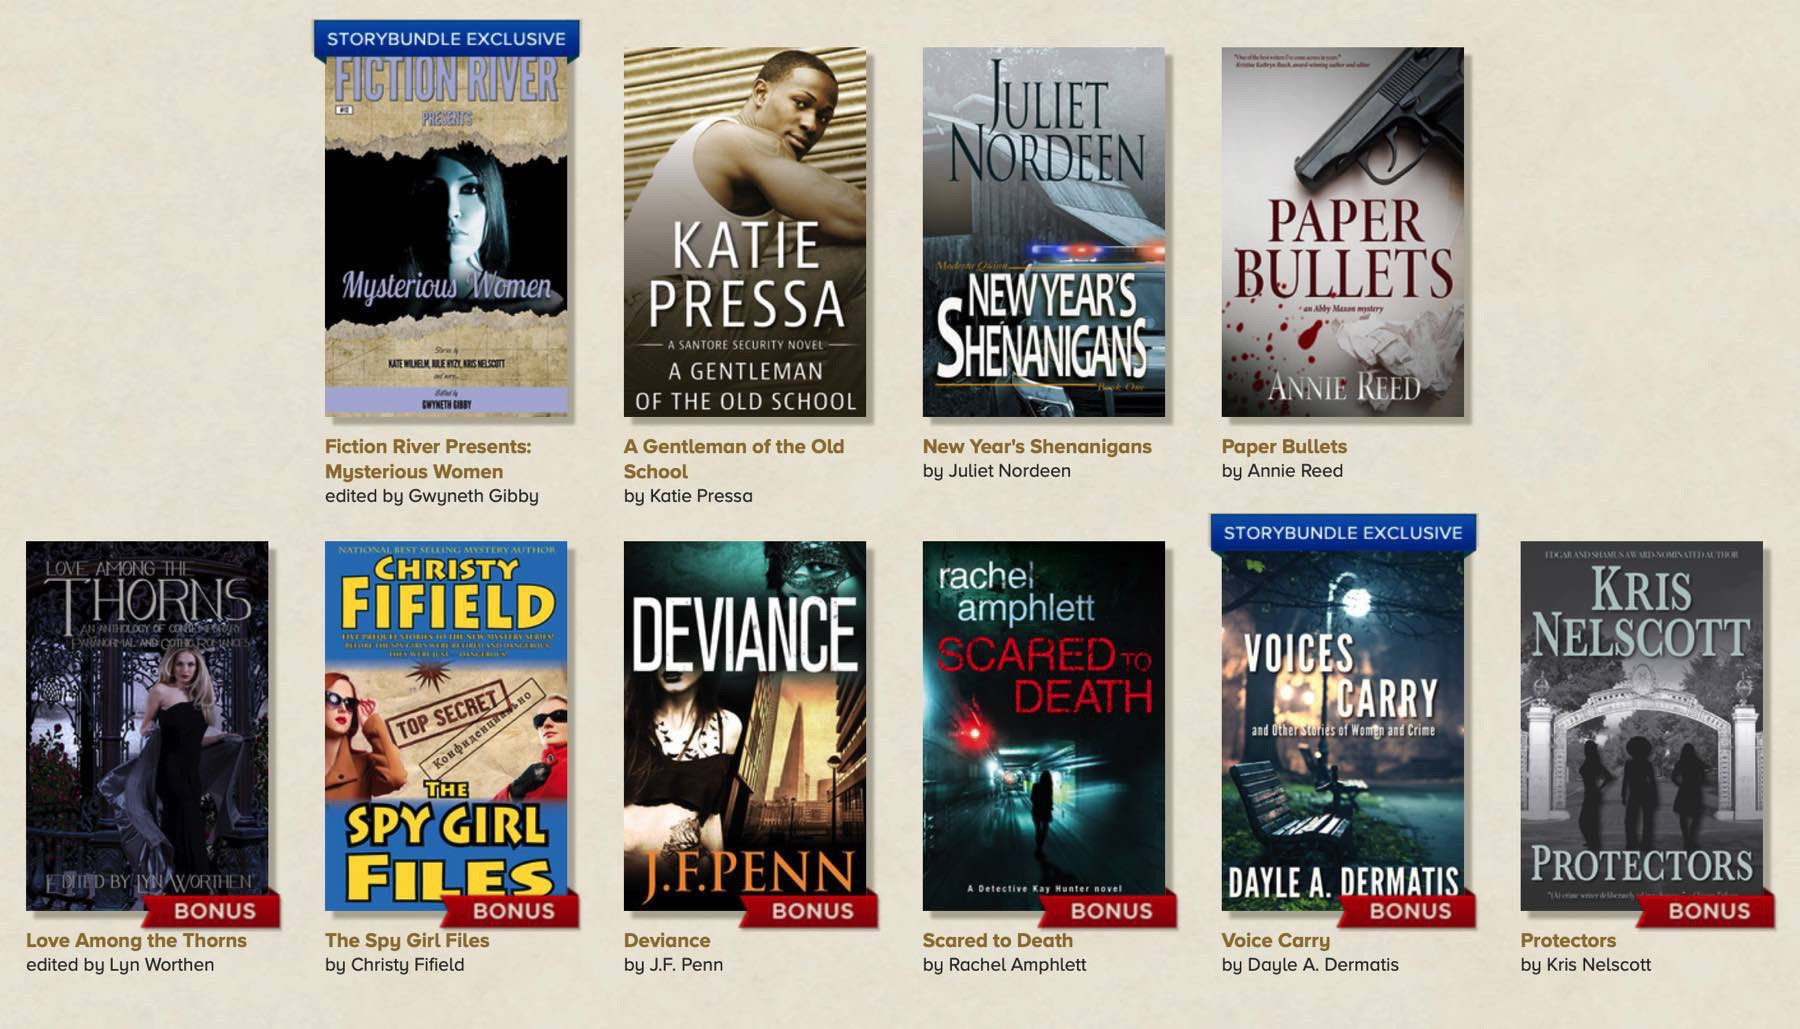 SCreenshot of the 10 books available.